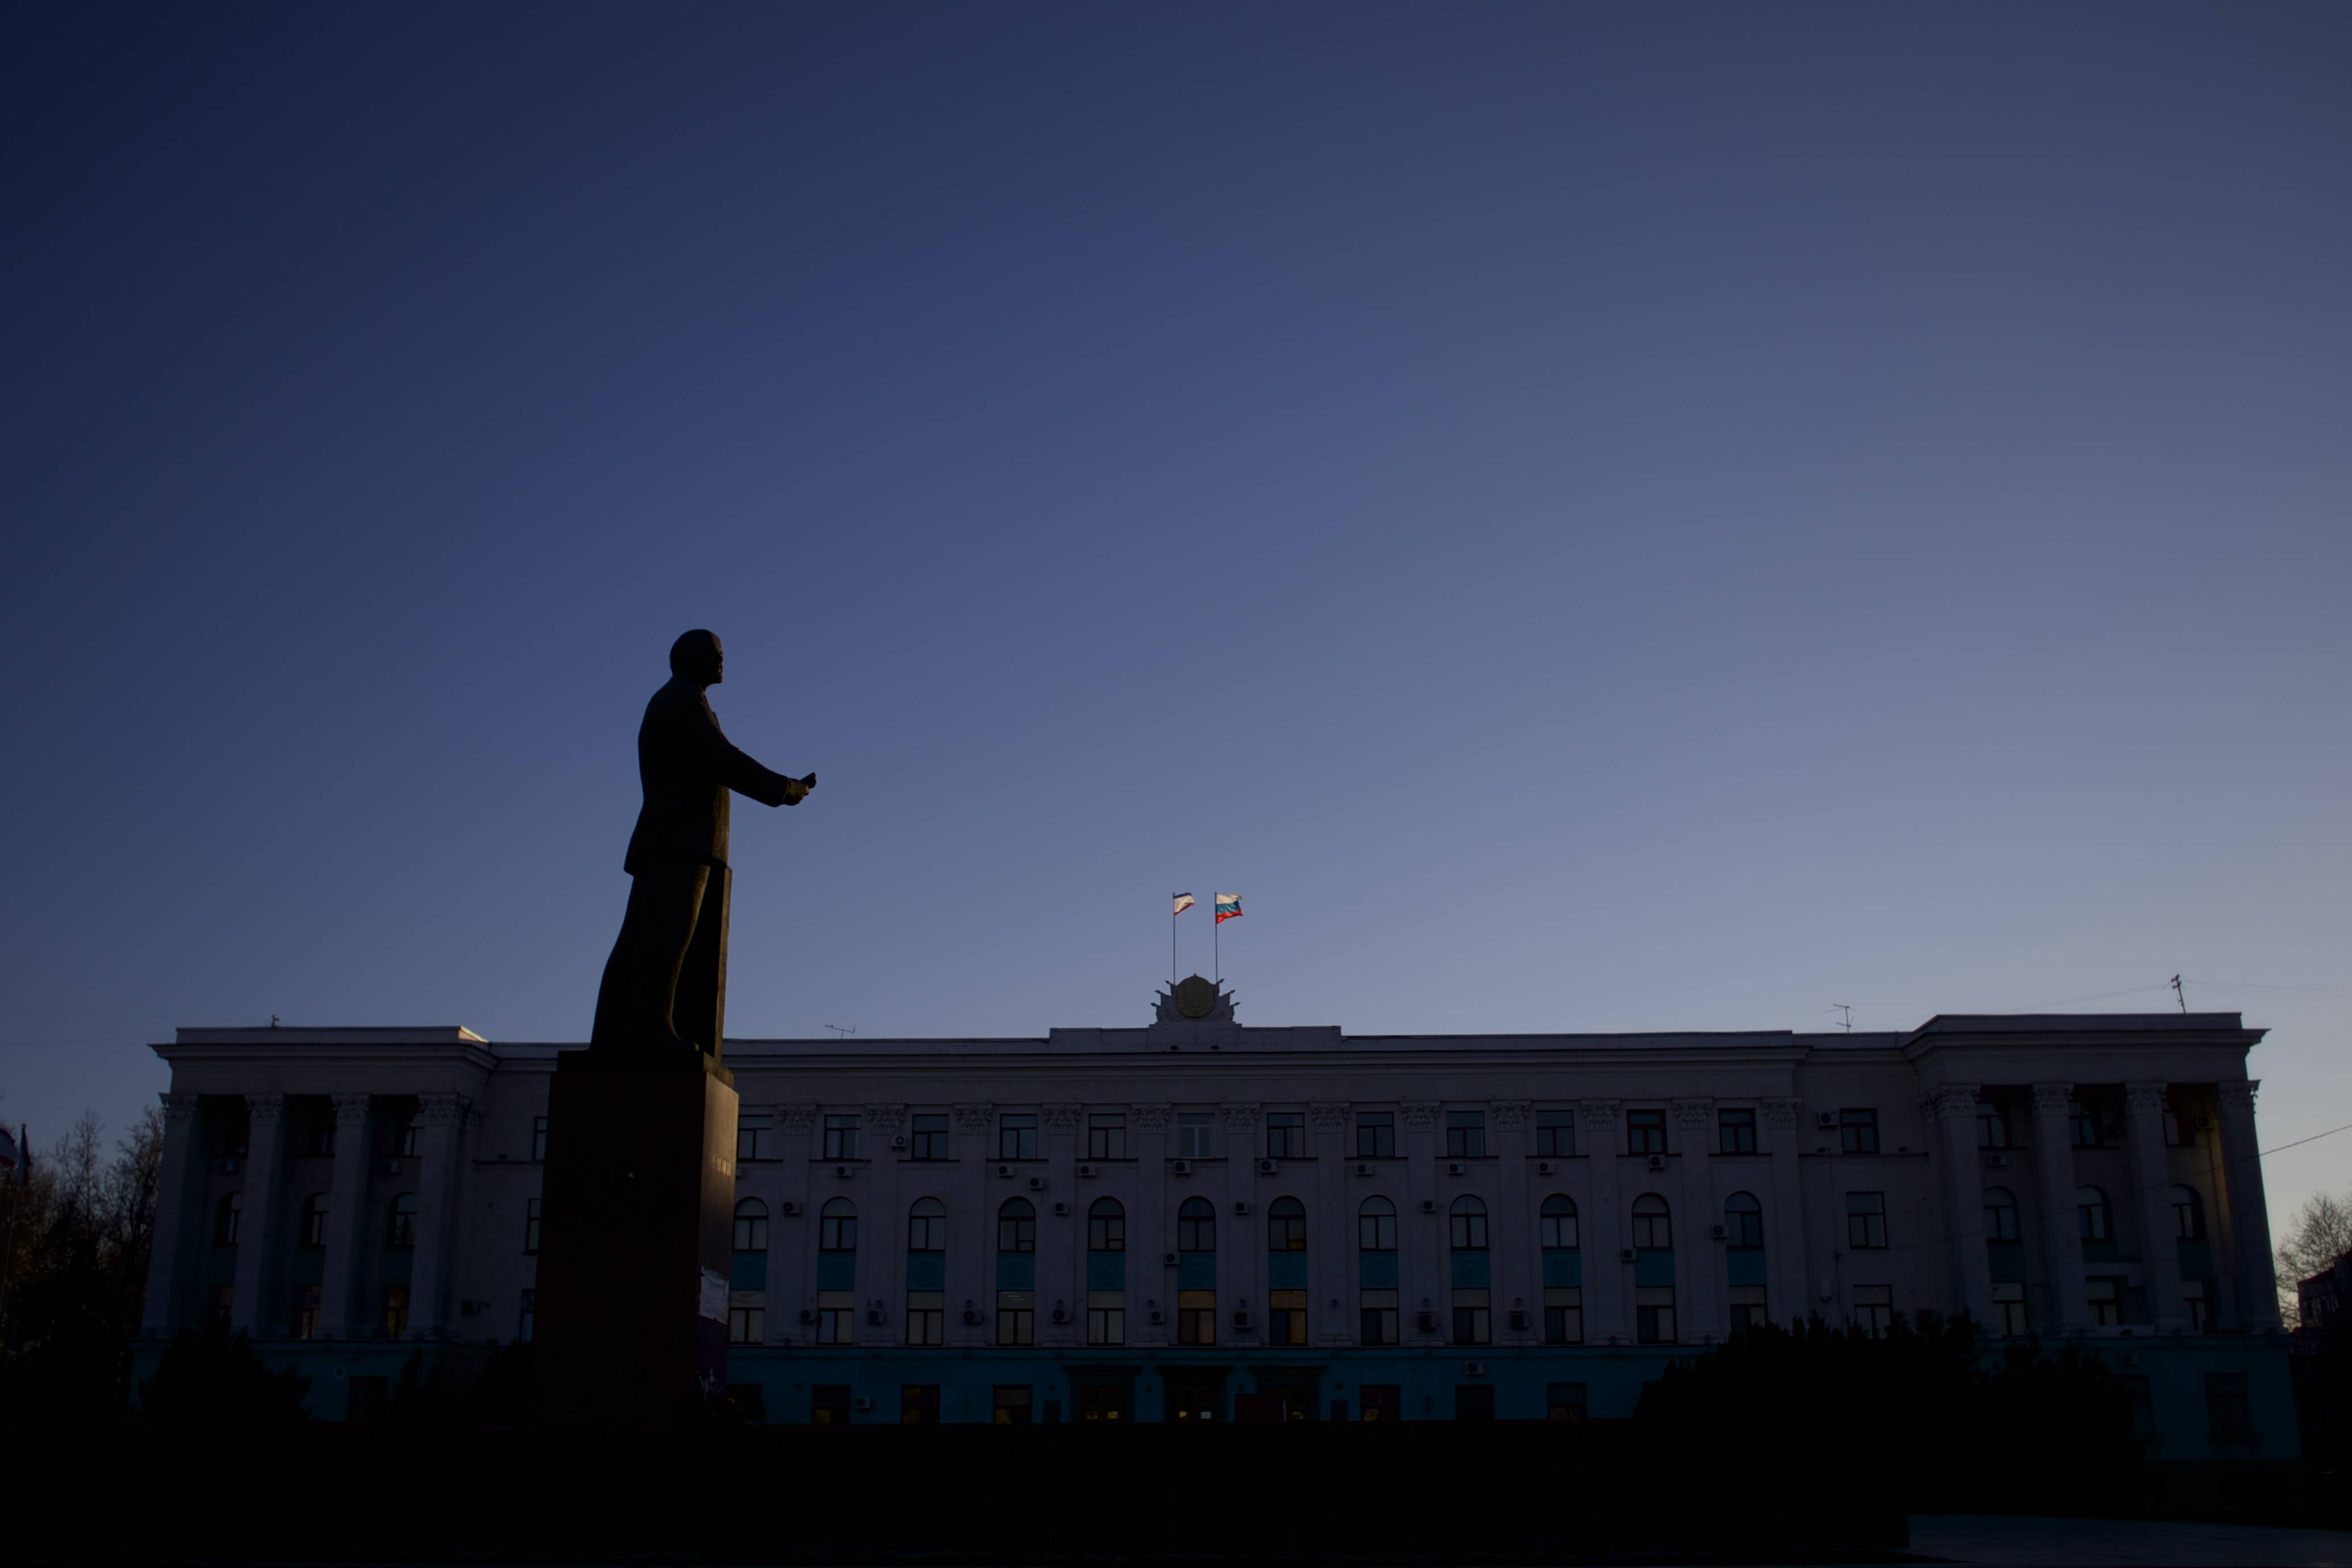 Russian and Crimean flags fly over local government building as Soviet Union founder Vladimir Lenin's statue dominates over landscape in downtown in Simferopol, Ukraine, on Saturday, March 15. Tensions are high in the Black Sea peninsula of Crimea, where a referendum is to be held Sunday on whether to split off from Ukraine and seek annexation by Russia.